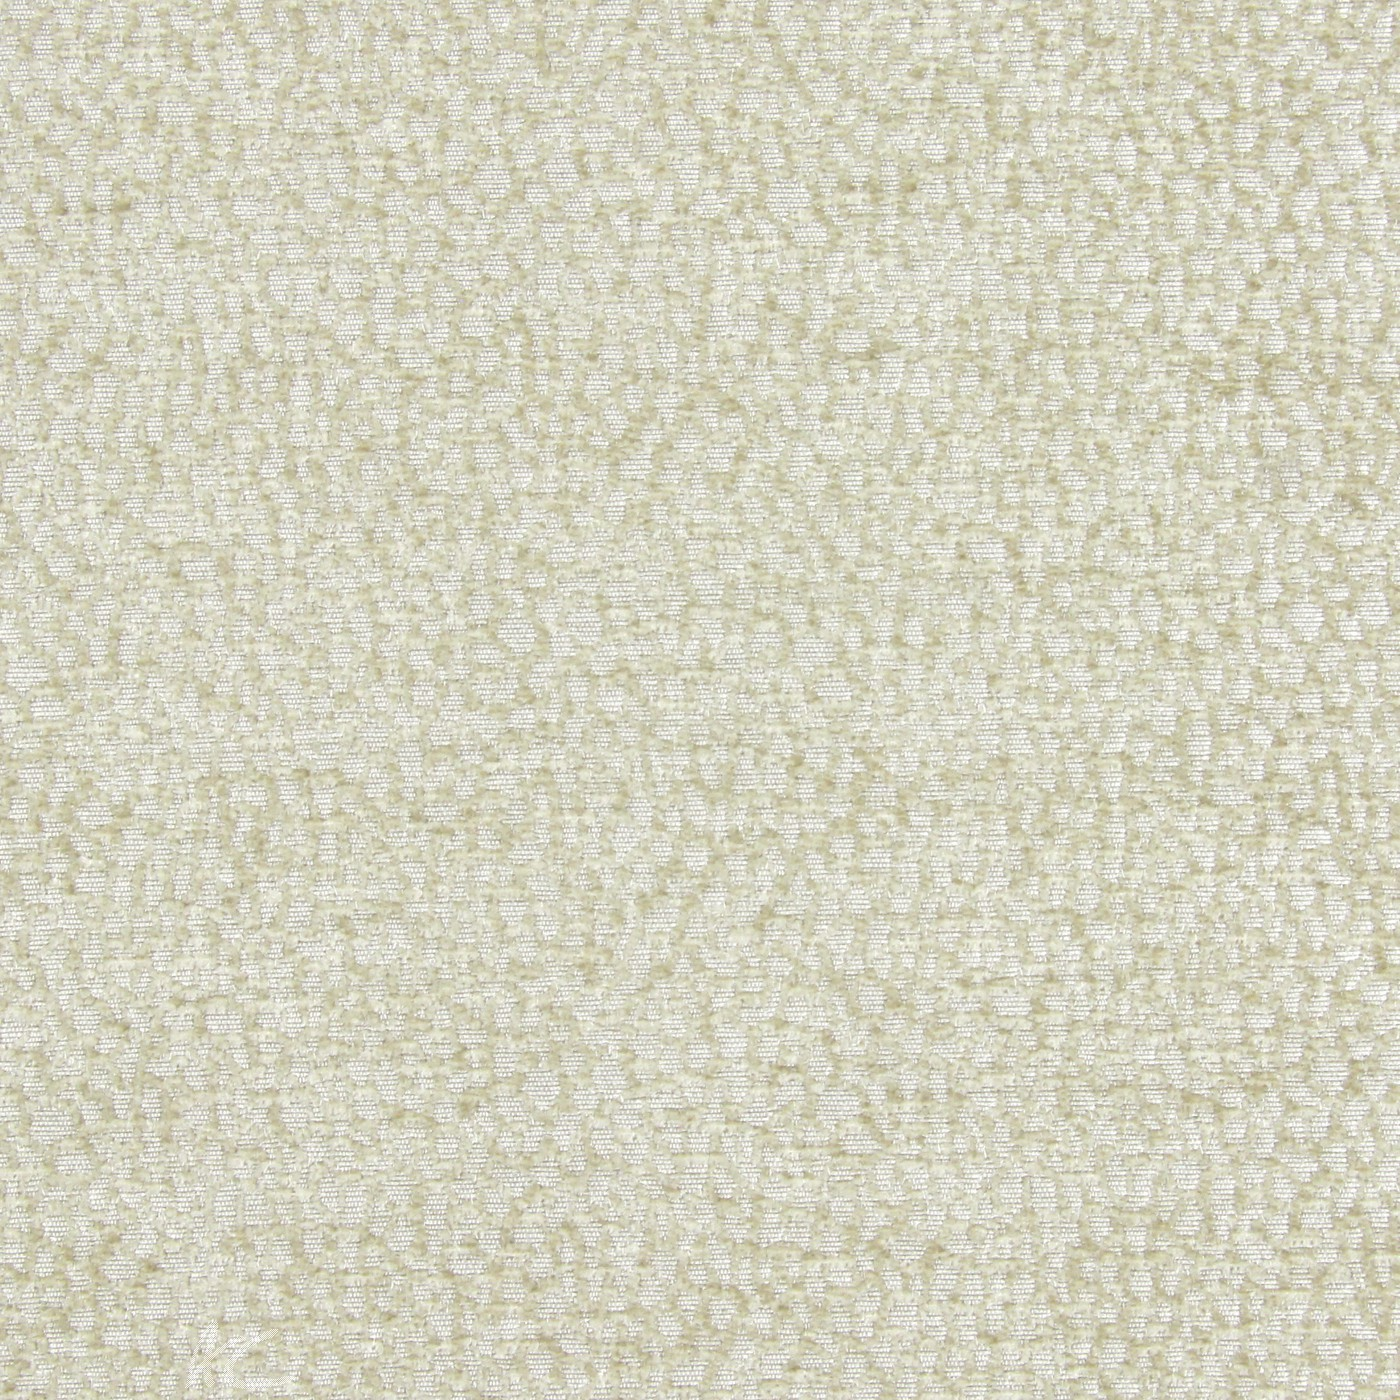 Prestigious Textiles Greenwich Bexley Honey Made to Measure Curtains